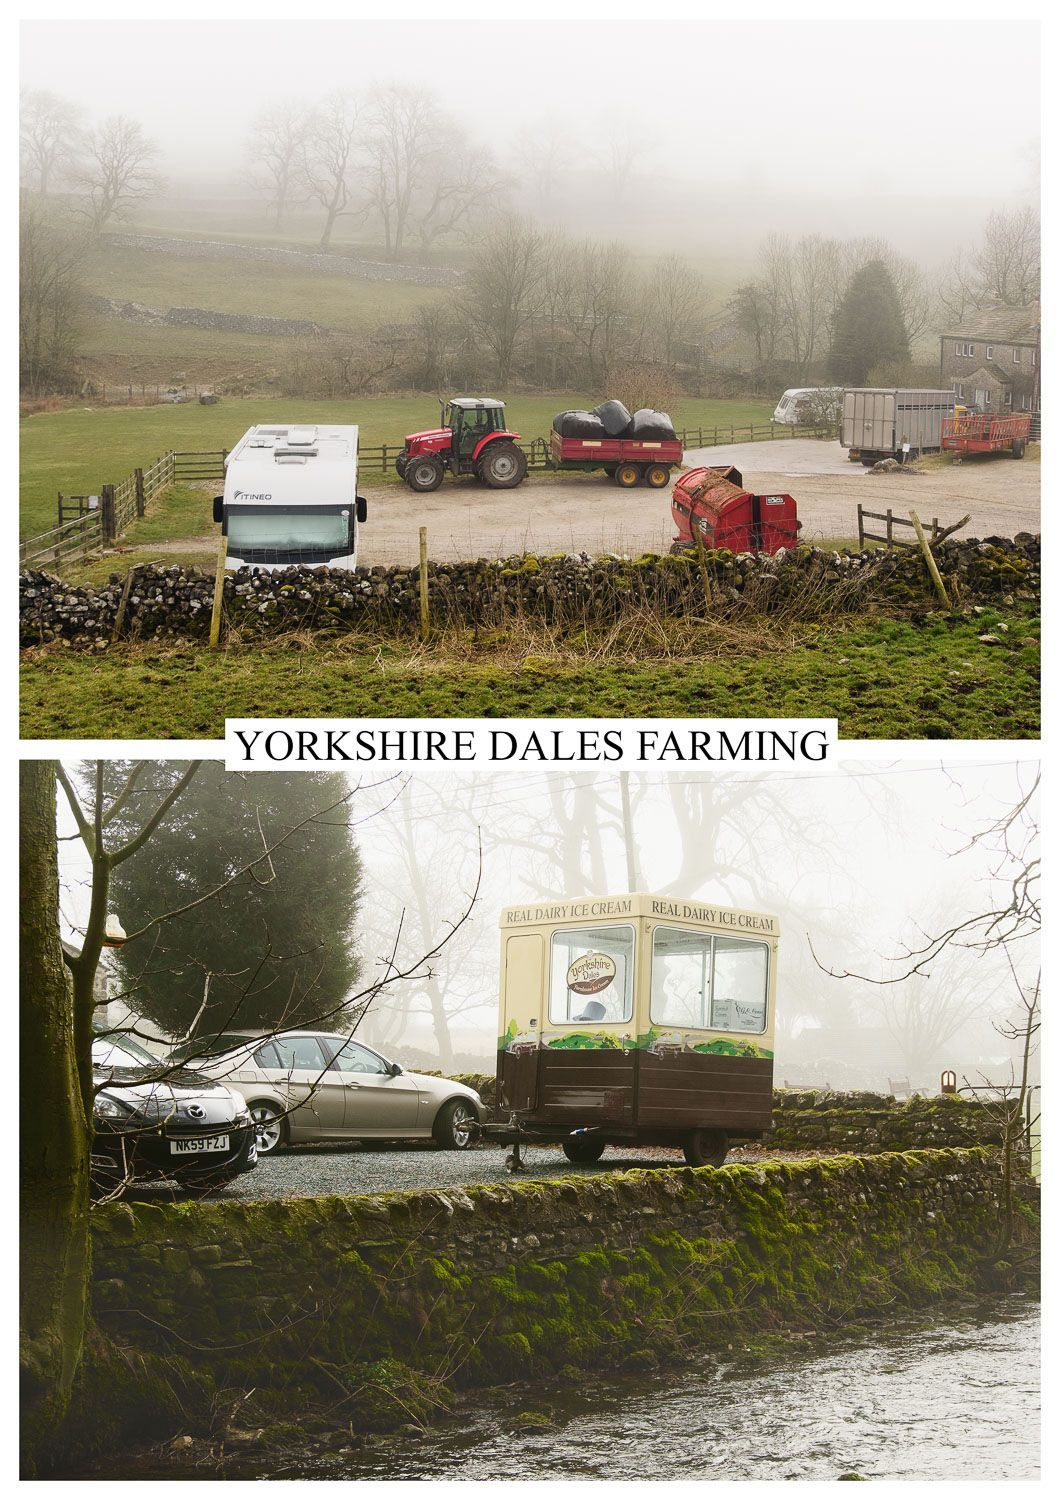 postcard of farming and tourism, Yorkshire Dales